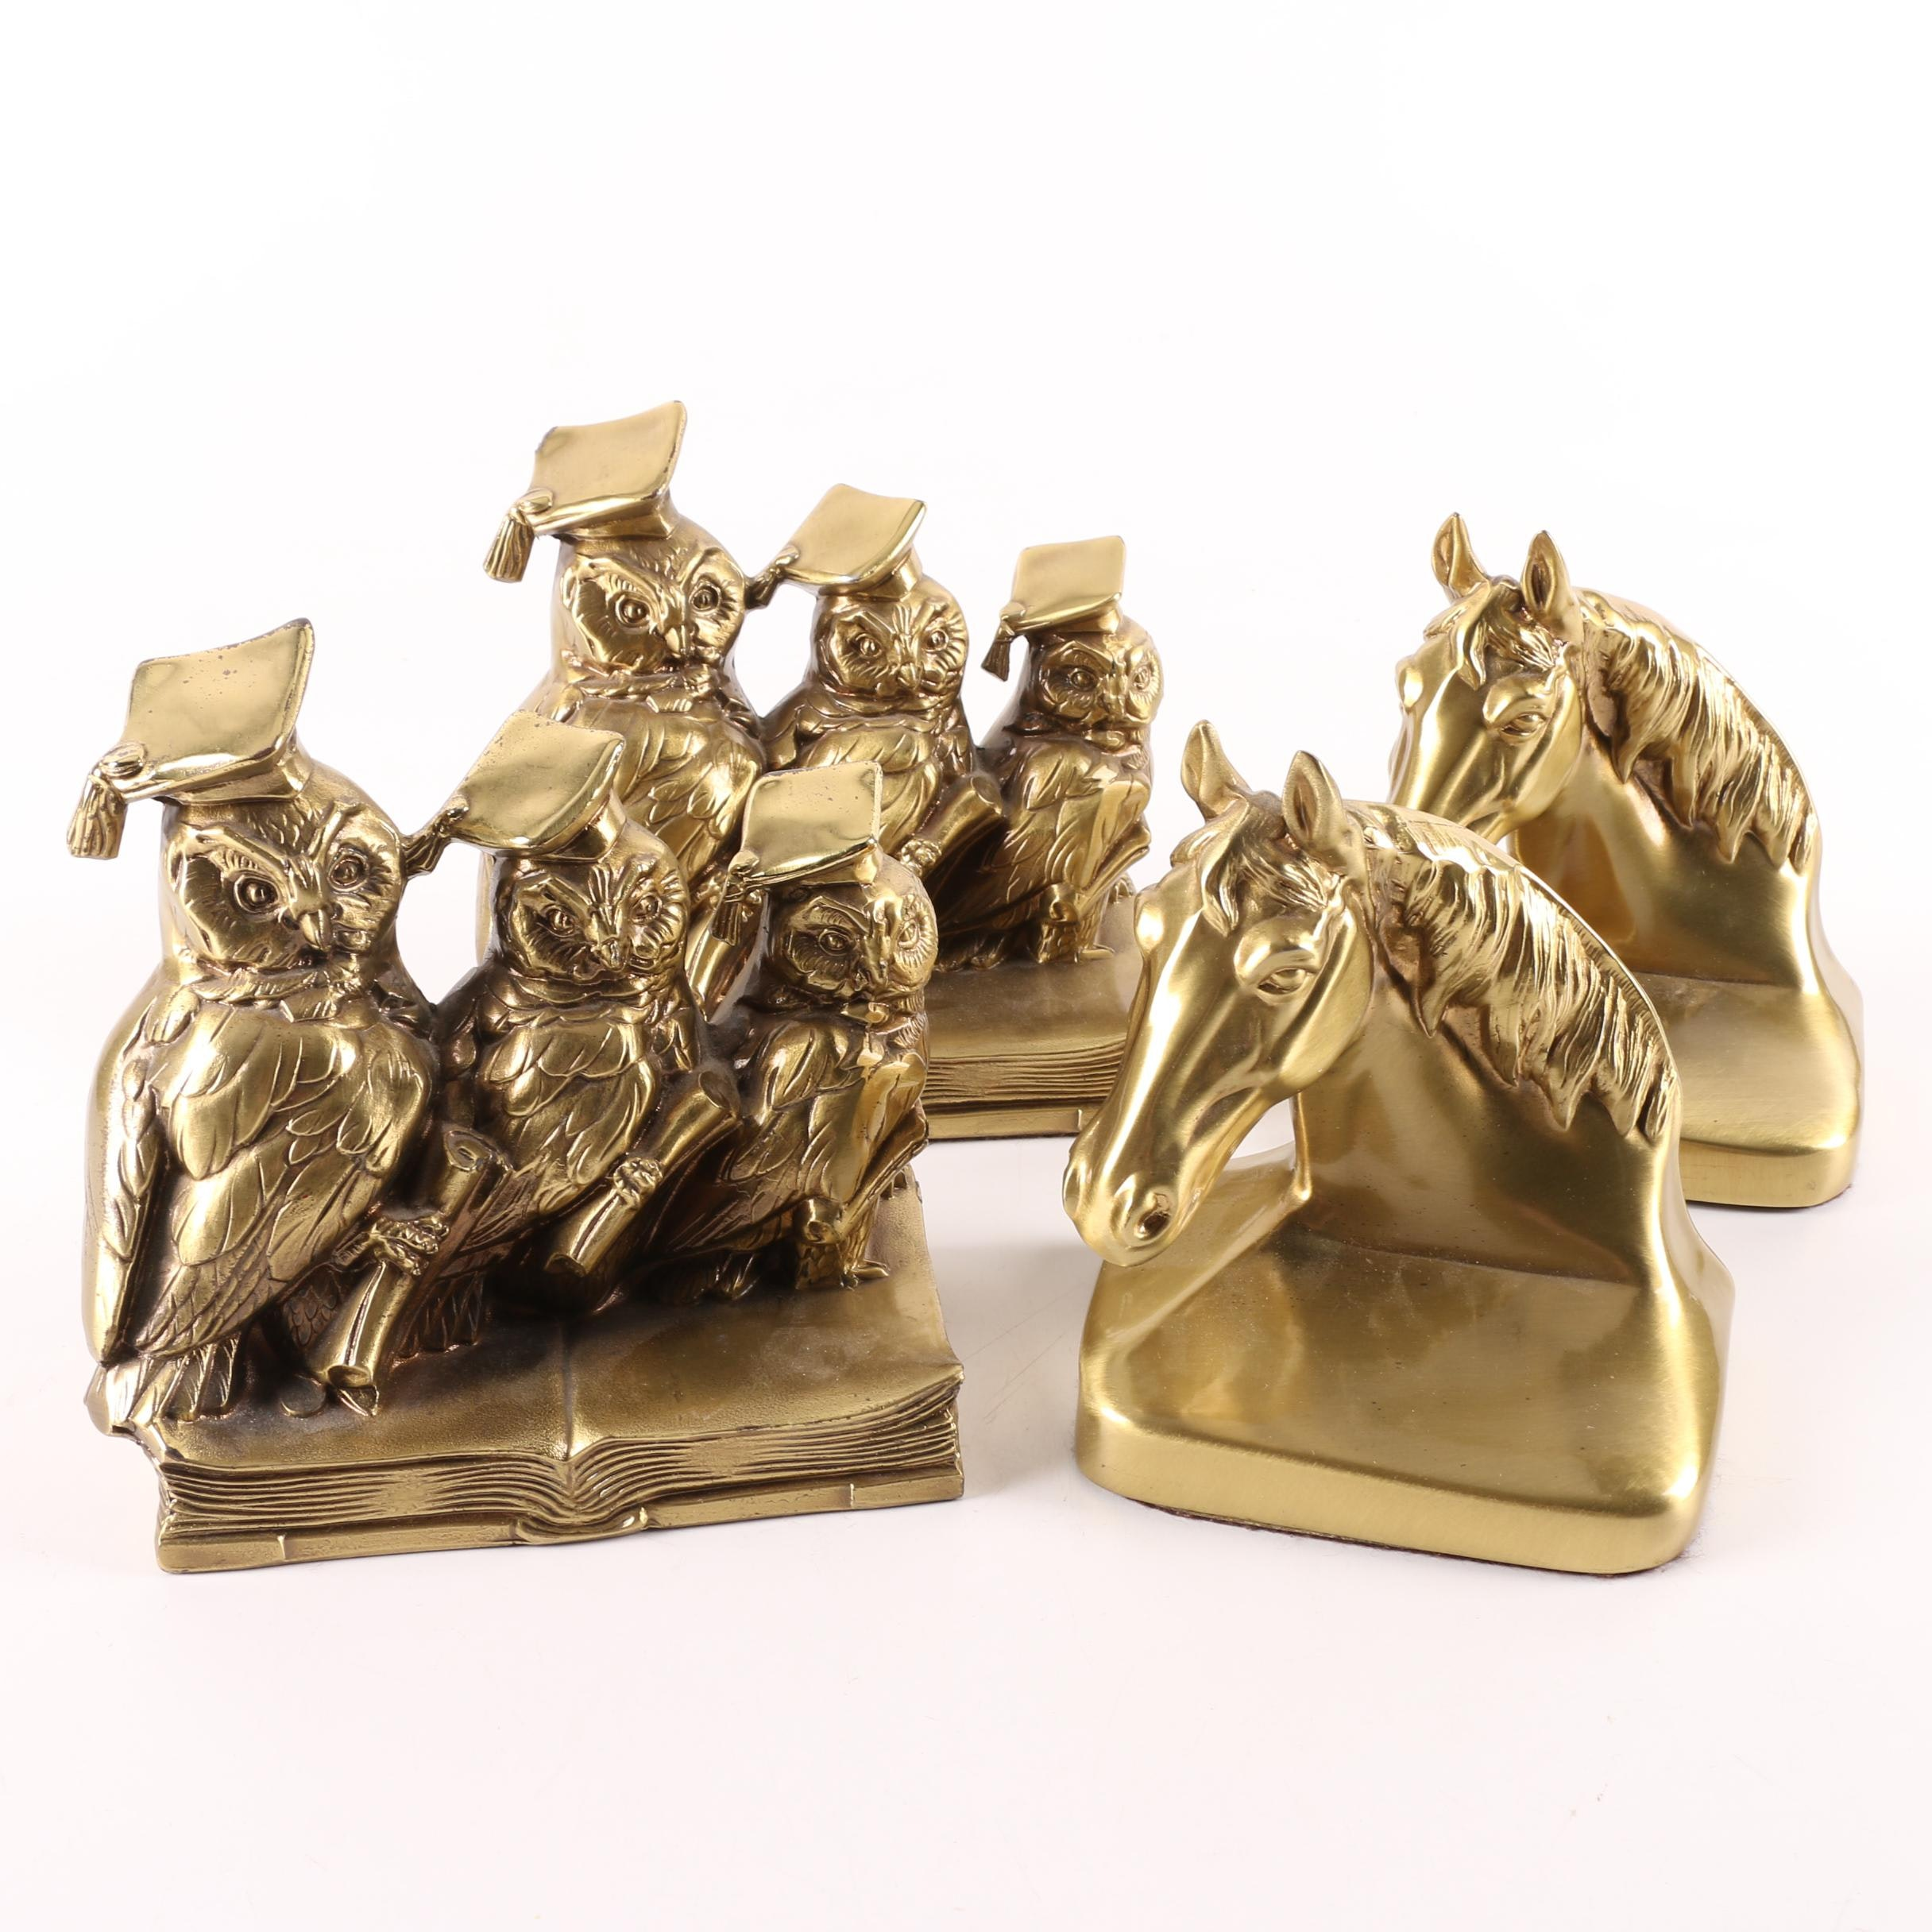 Two Pairs of Brass Bookends